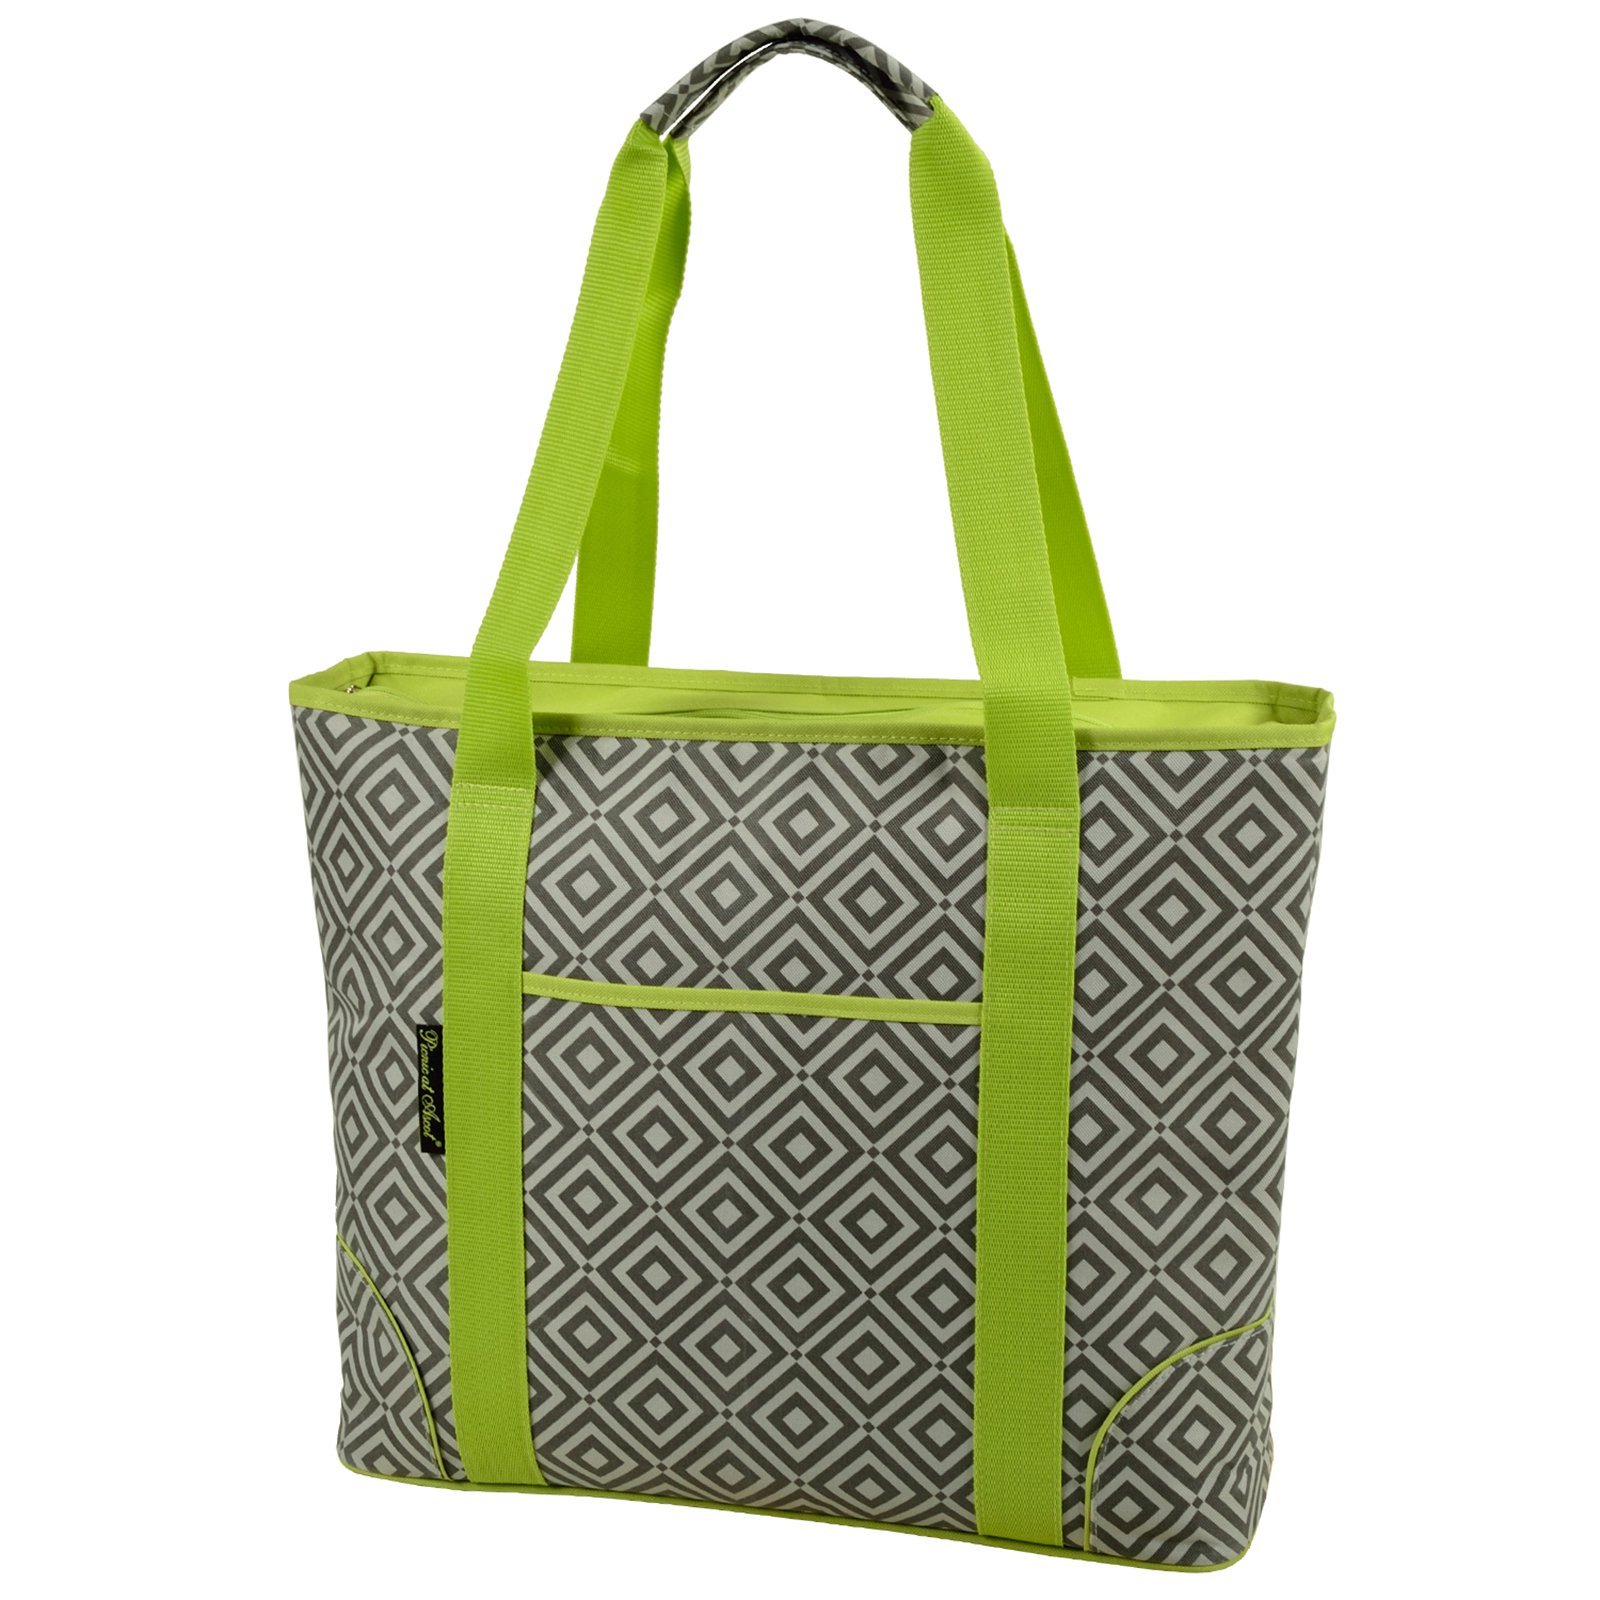 Picnic At Ascot Extra Large Insulated Tote